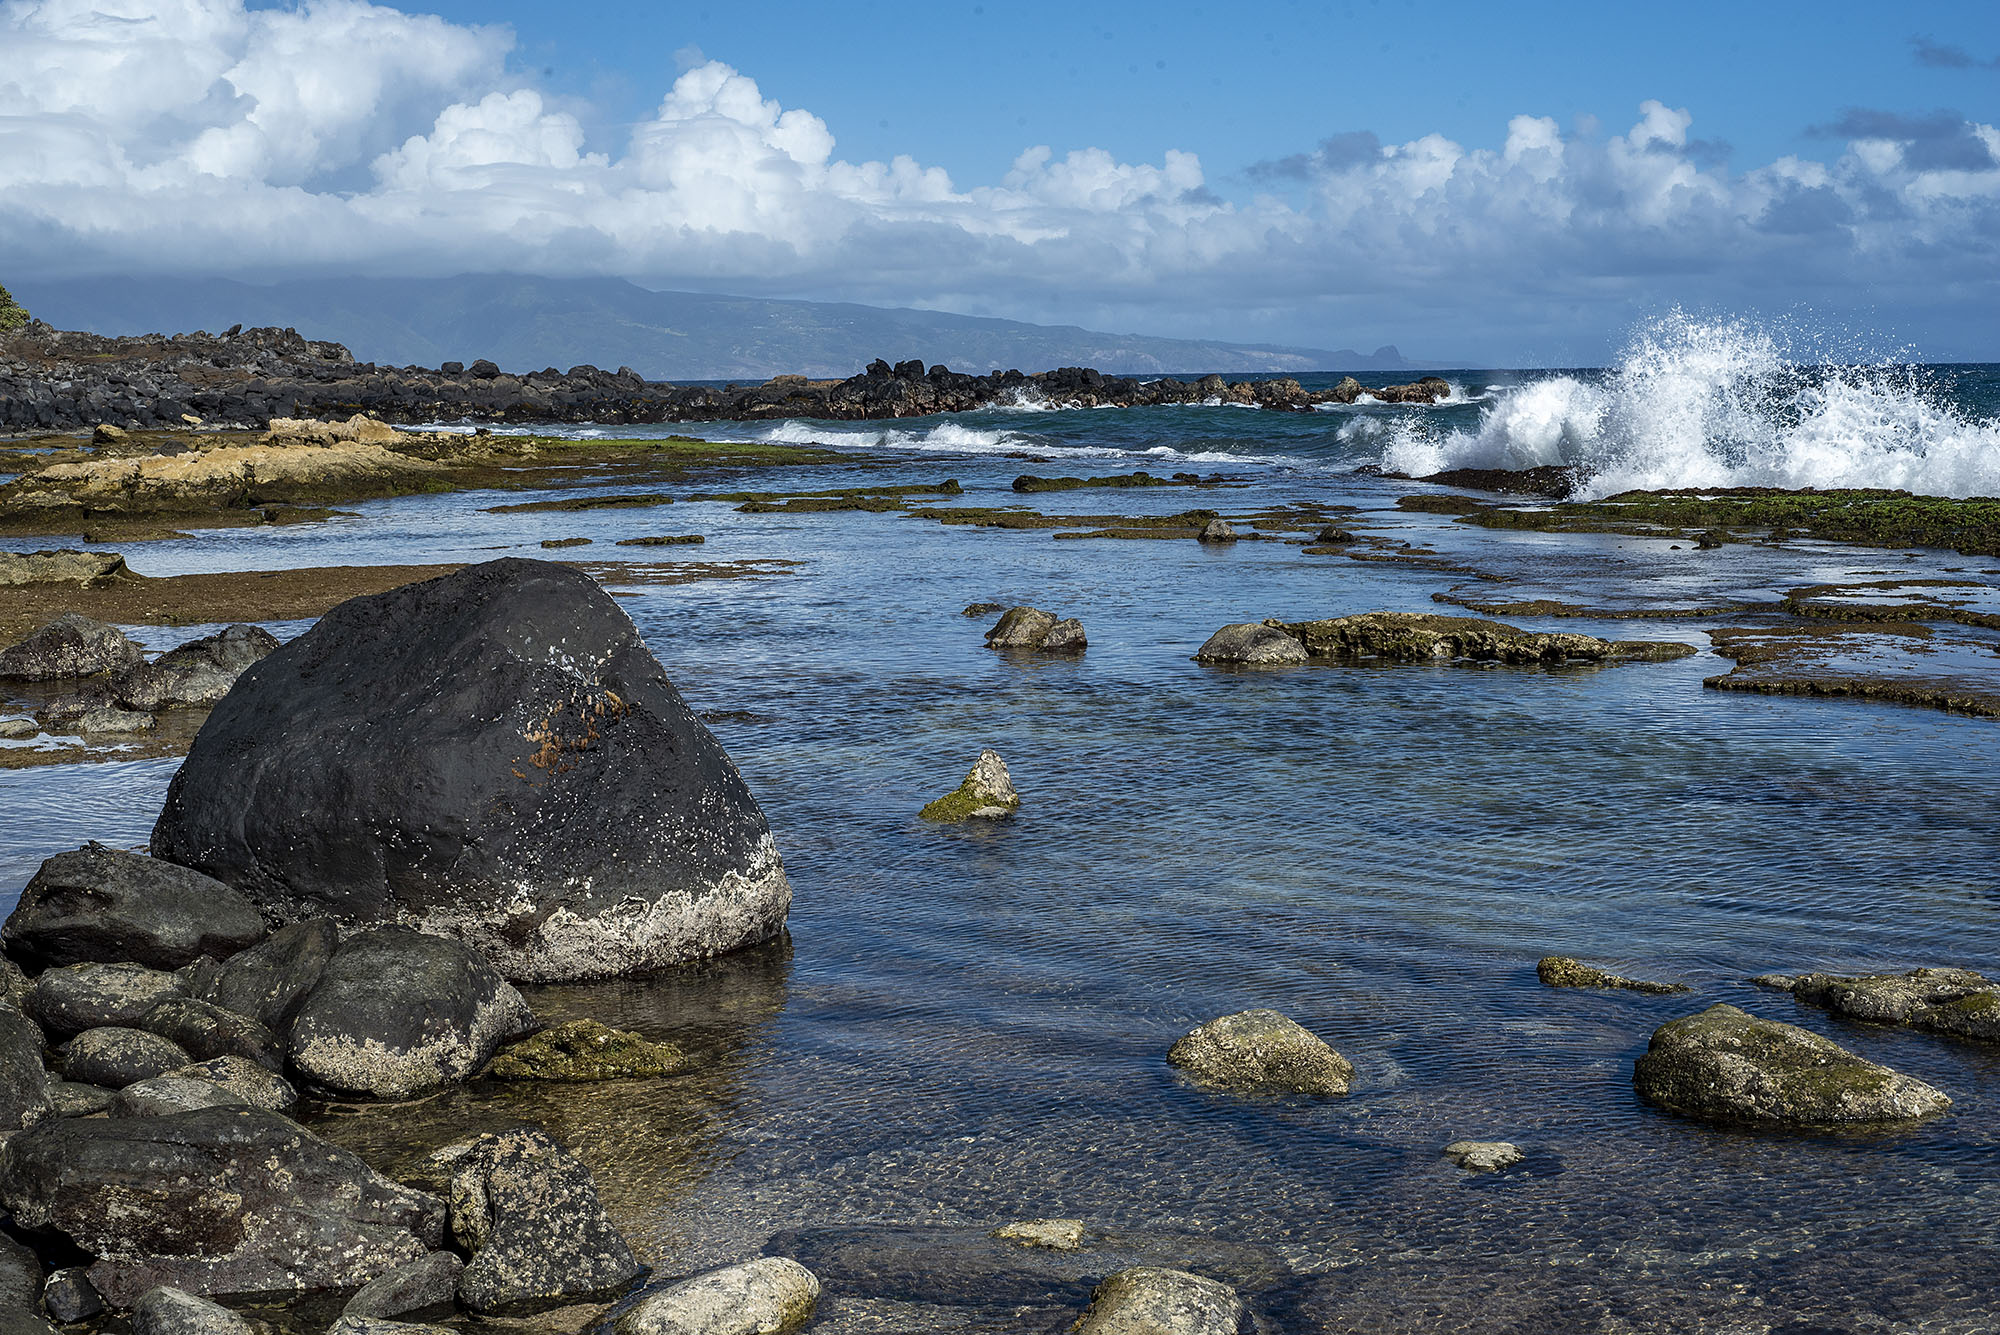 Maui beach with water and rocks